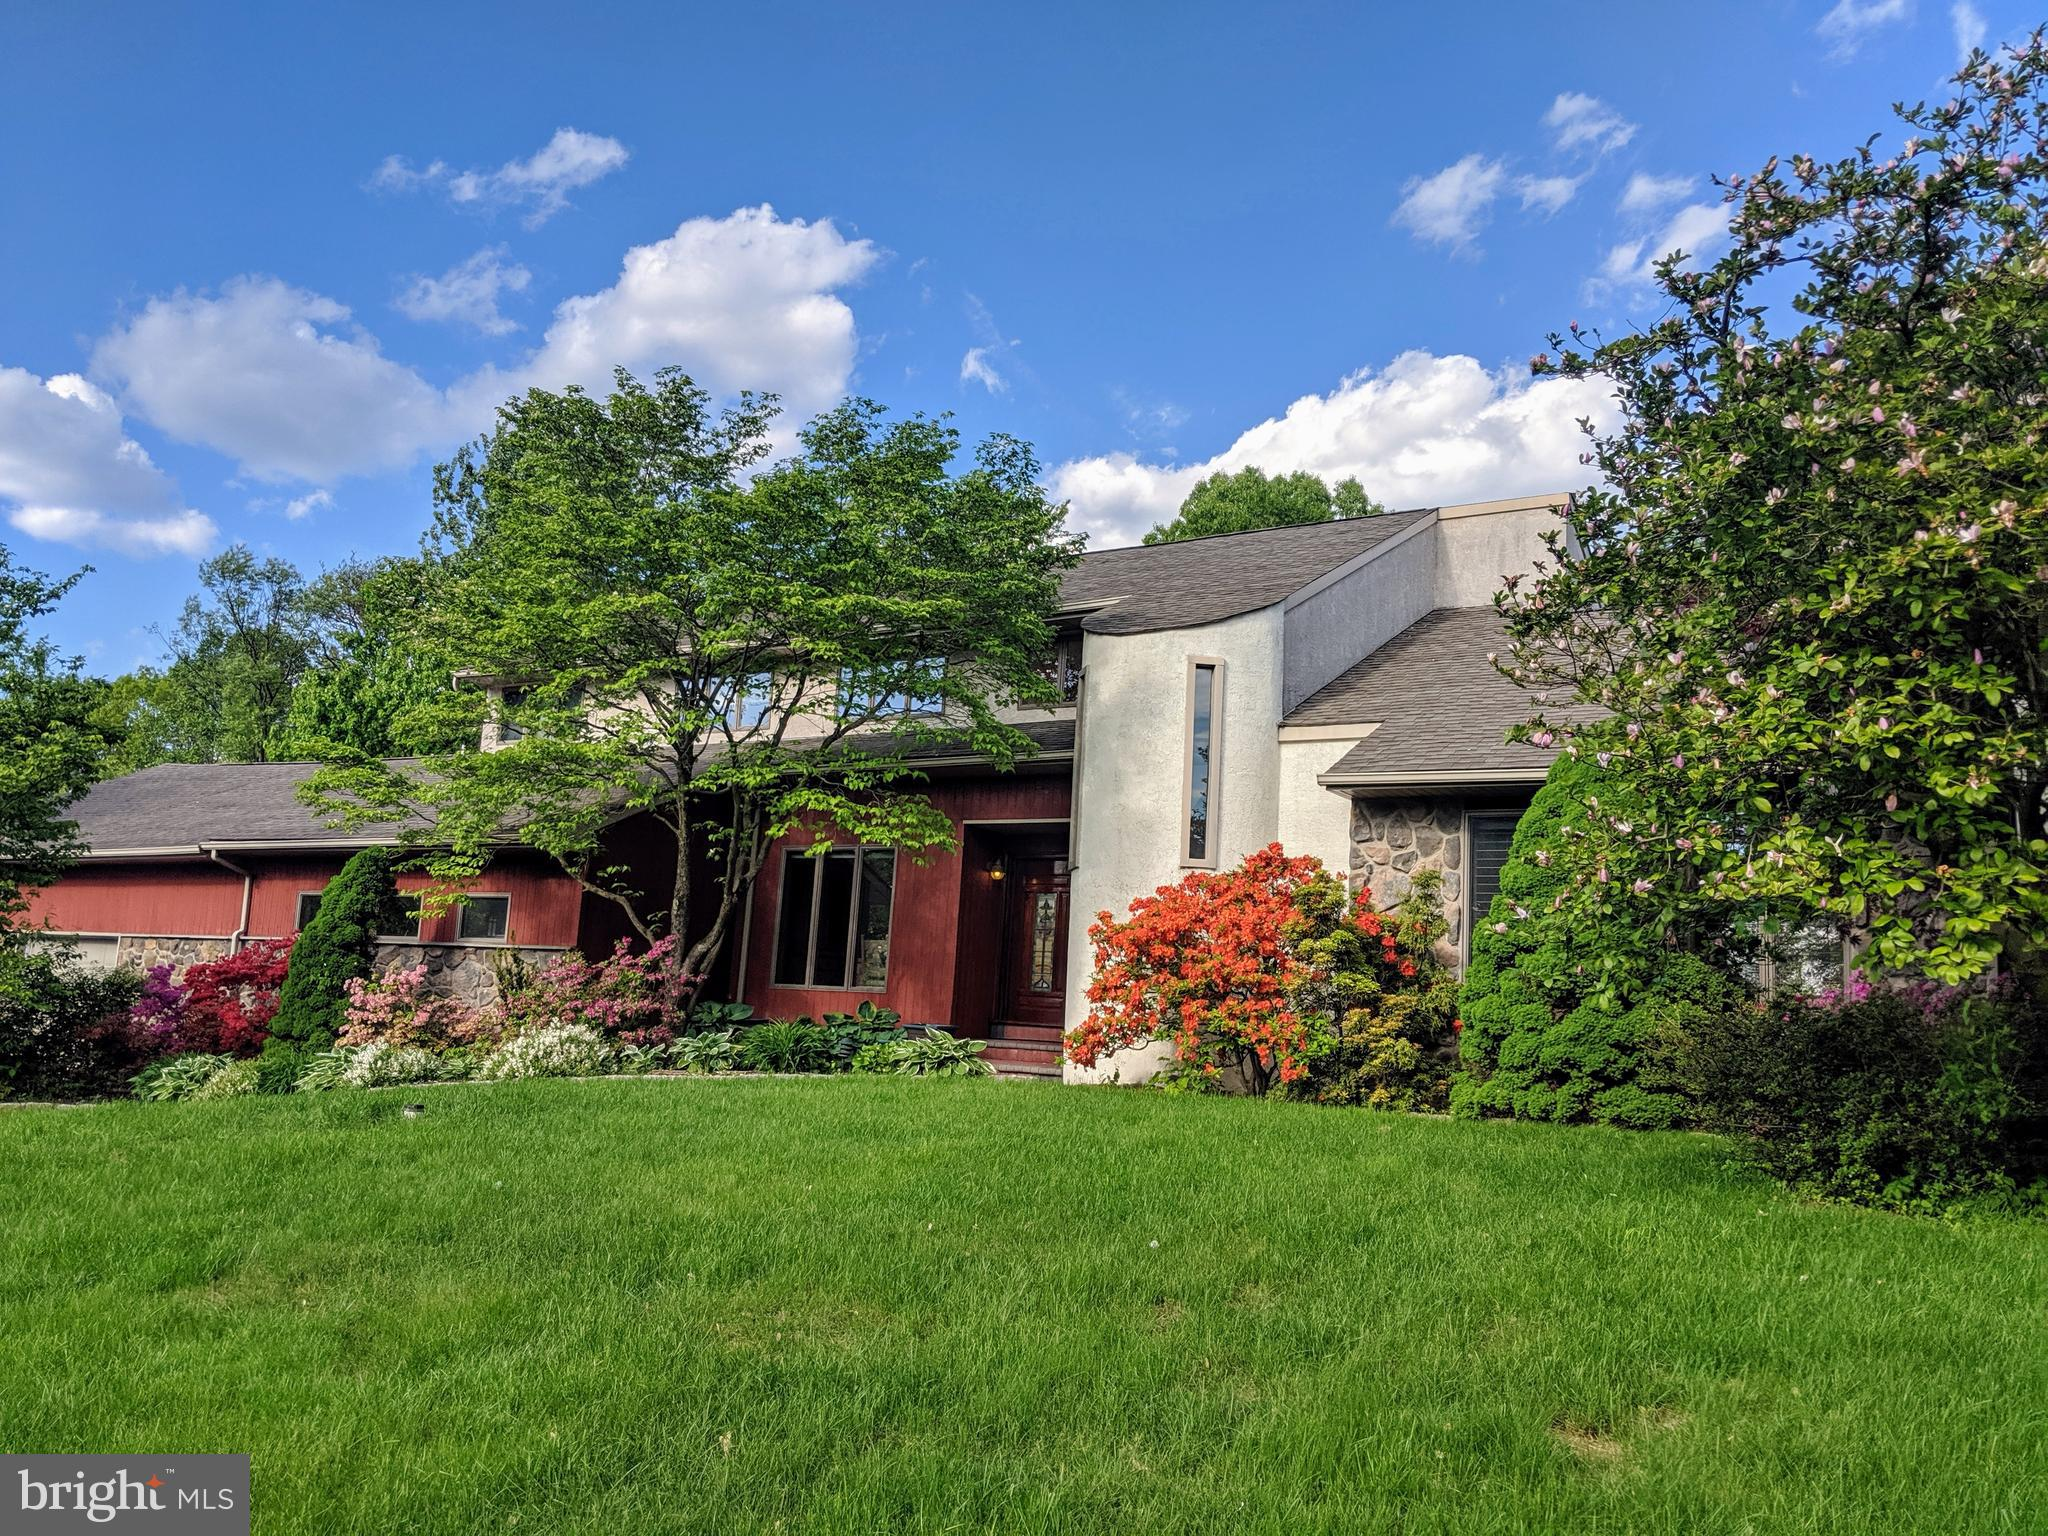 5275 CHESTNUT HILL ROAD, CENTER VALLEY, PA 18034